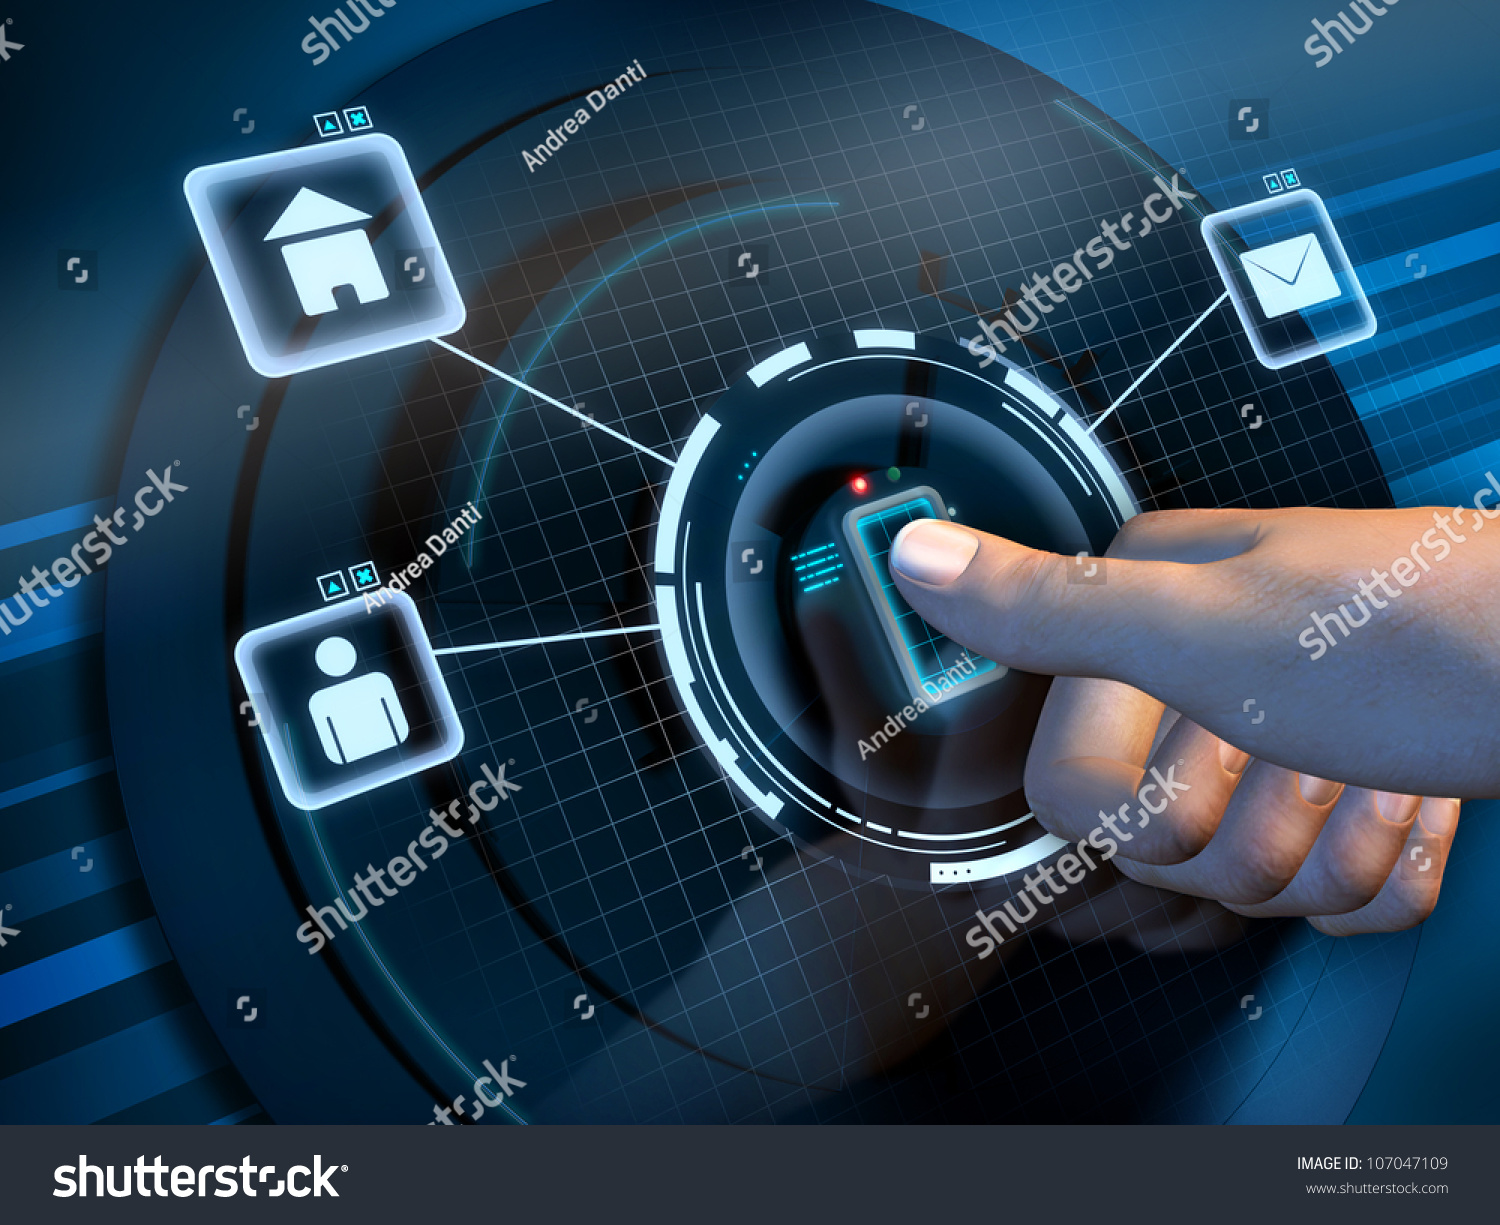 Fingerprint Recognition Used Access Software Interface